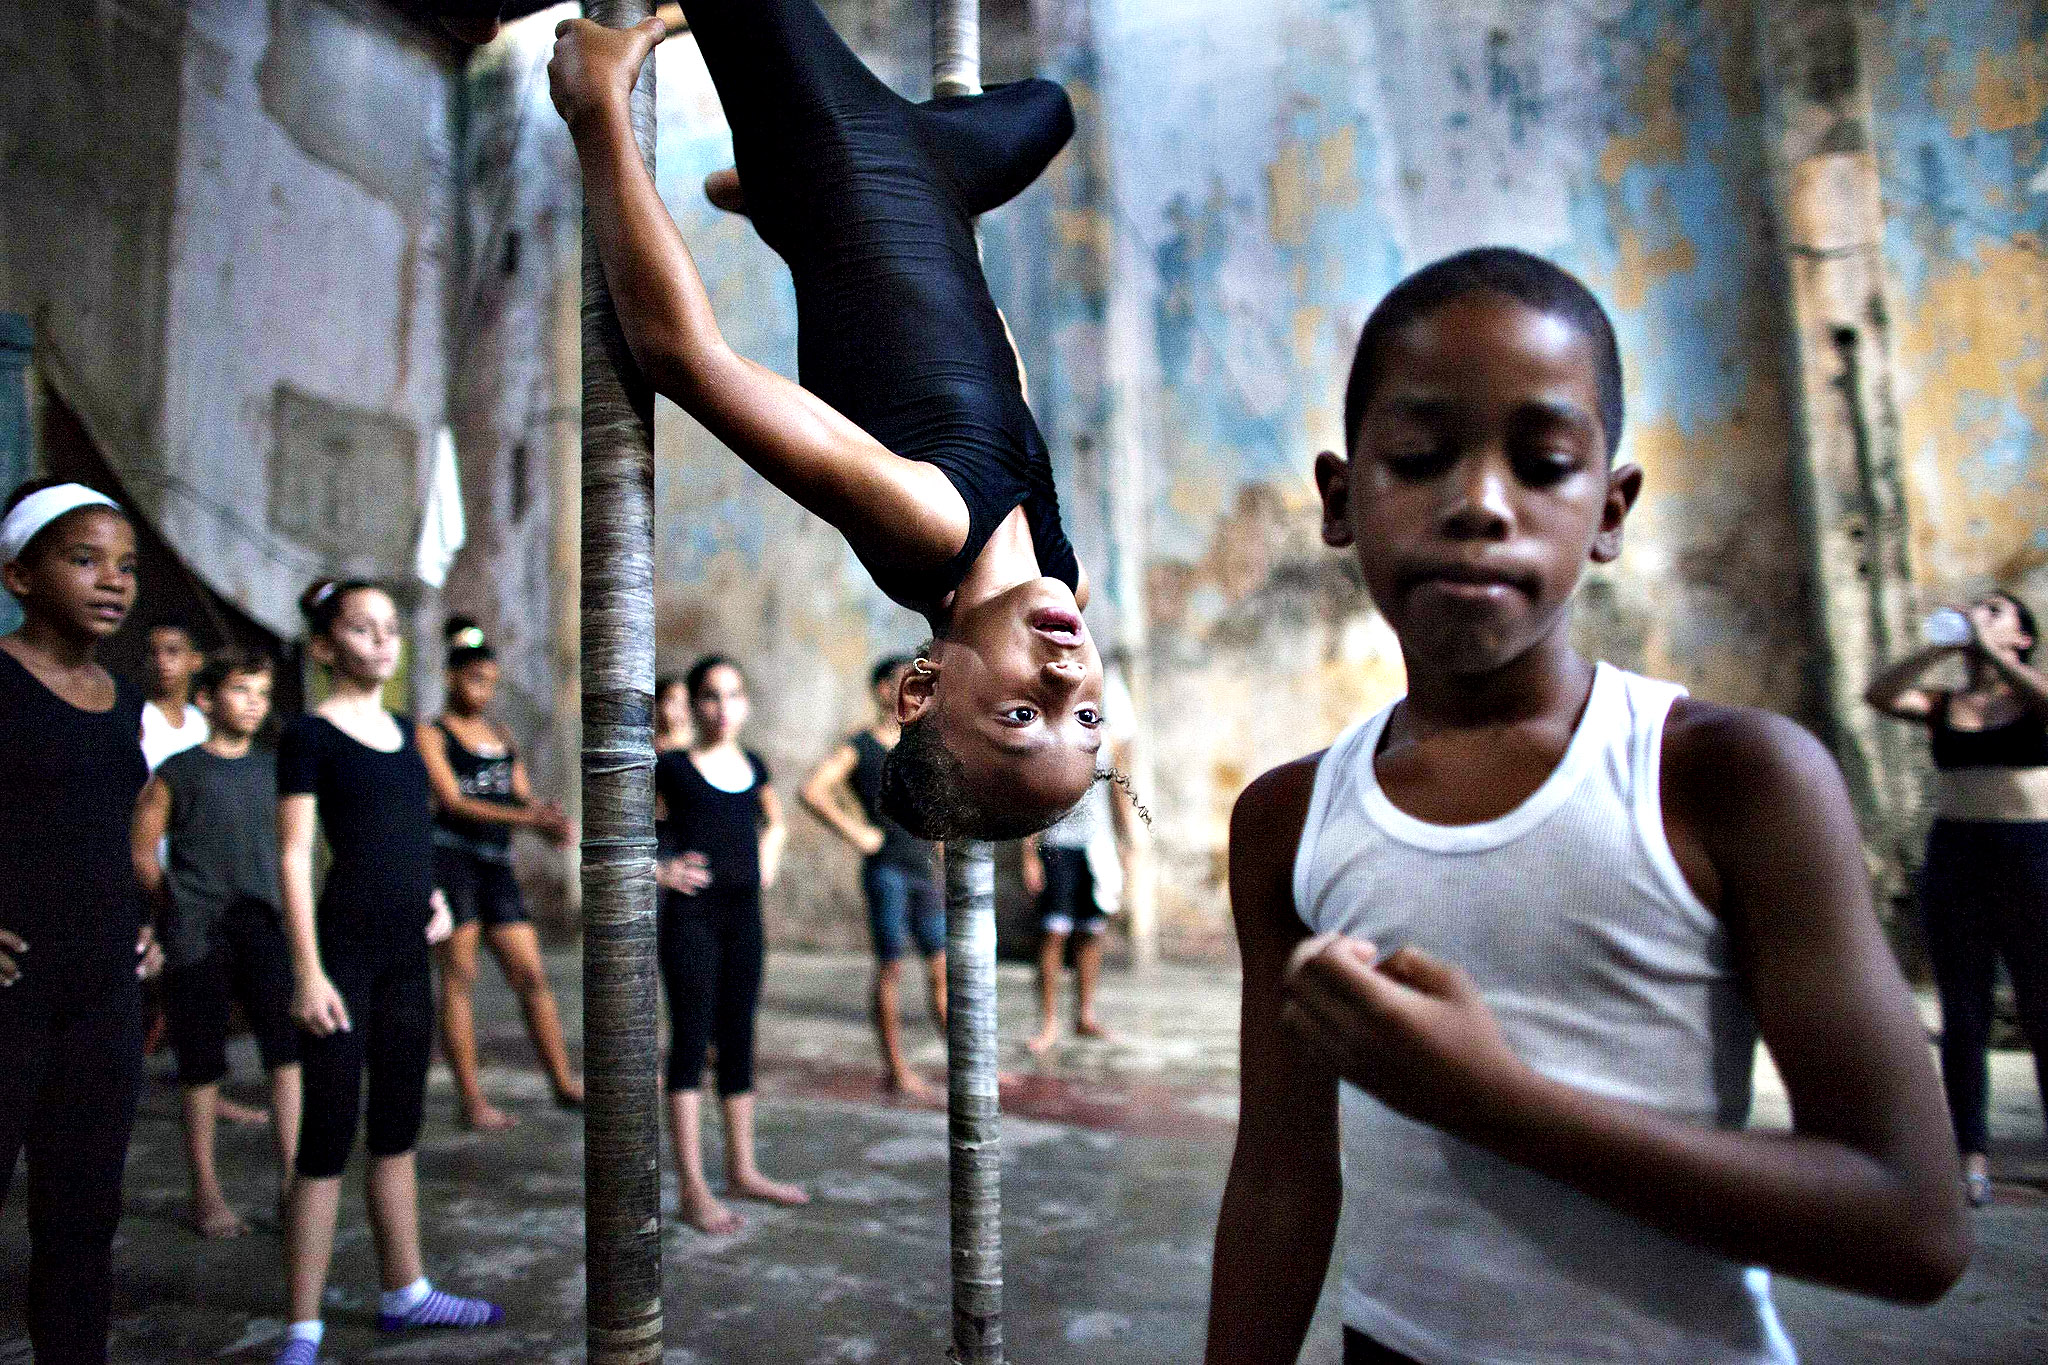 Children practise during a training session at a circus school in Havana. Inside an abandoned movie theatre on a noisy avenue in a working-class section of Havana, some 70 Cuban children as young as nine pursue their dream of joining the circus. The circus is a lucrative career path and a rare opportunity for Cubans to make real money on the communist-led island.